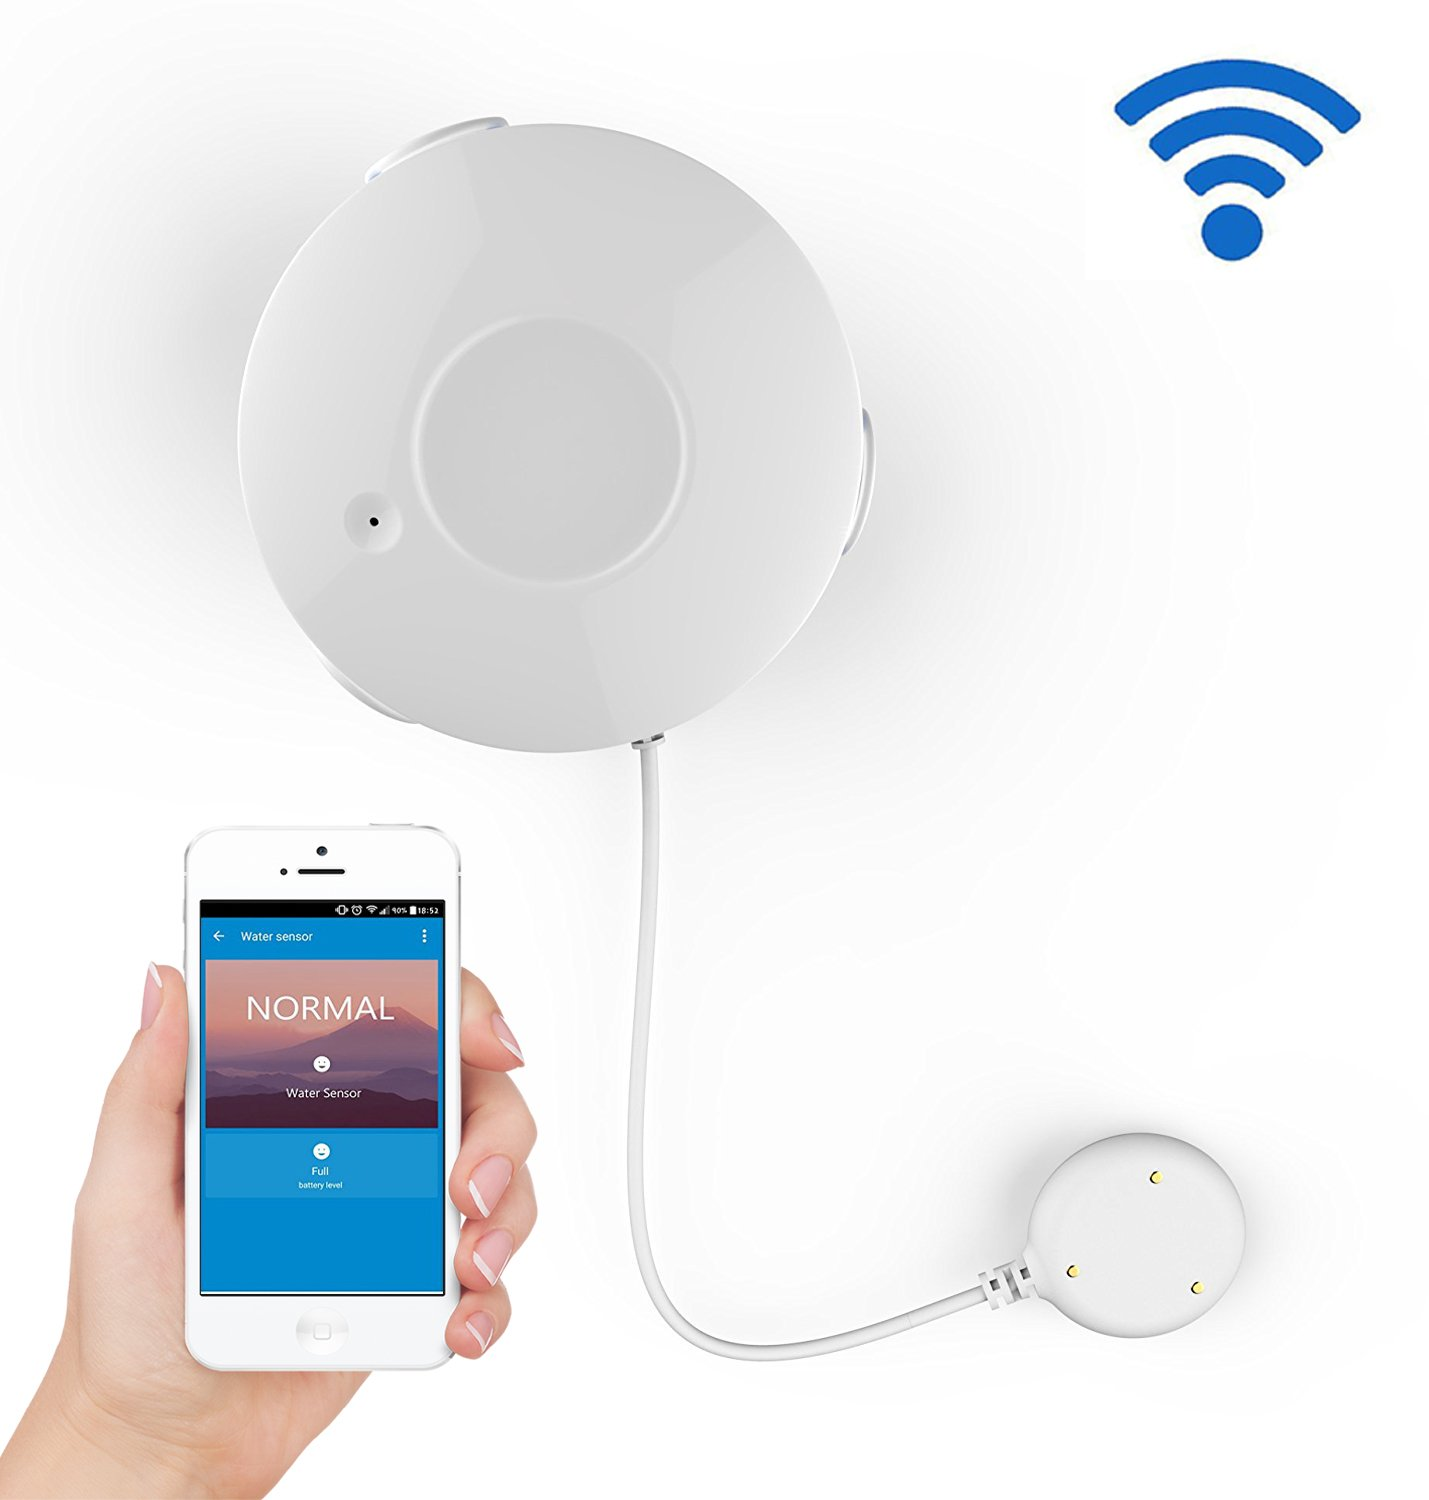 Coolcam Smart Wi-Fi Water Sensor, Flood and Leak Detector Alarm and App Notification Alerts, No Hub Required, Simple Plug & Play Set Up